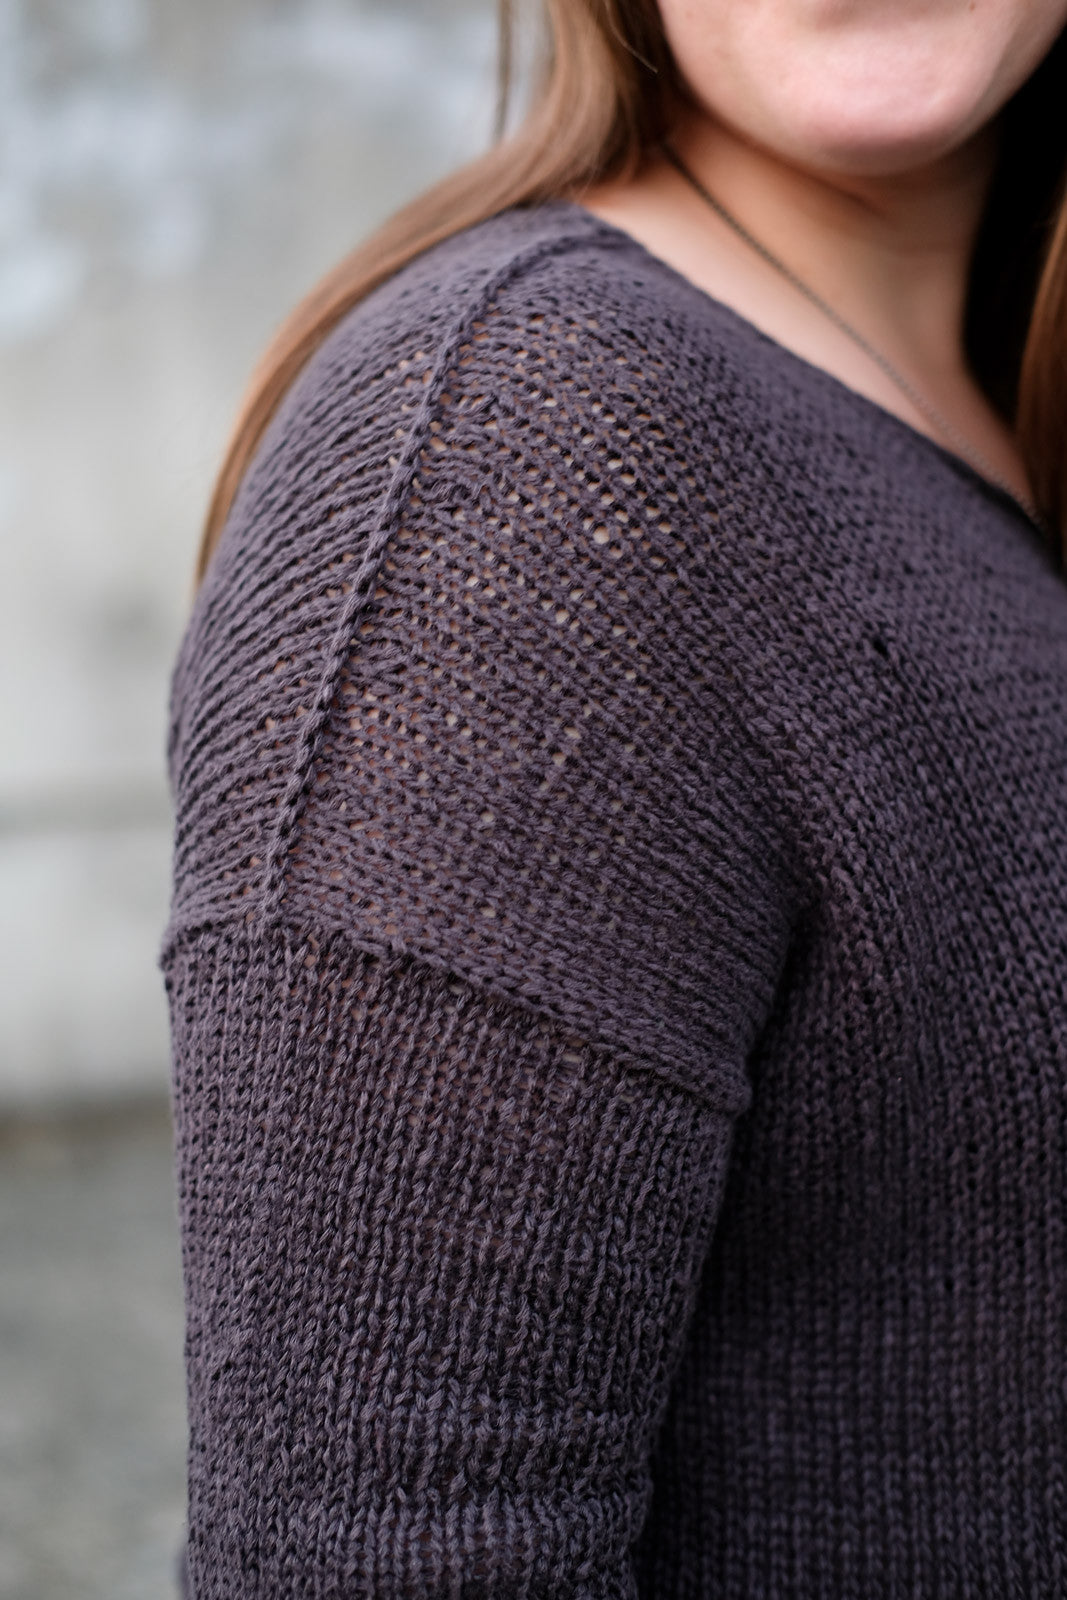 Reverse 3-needle bind off shoulder